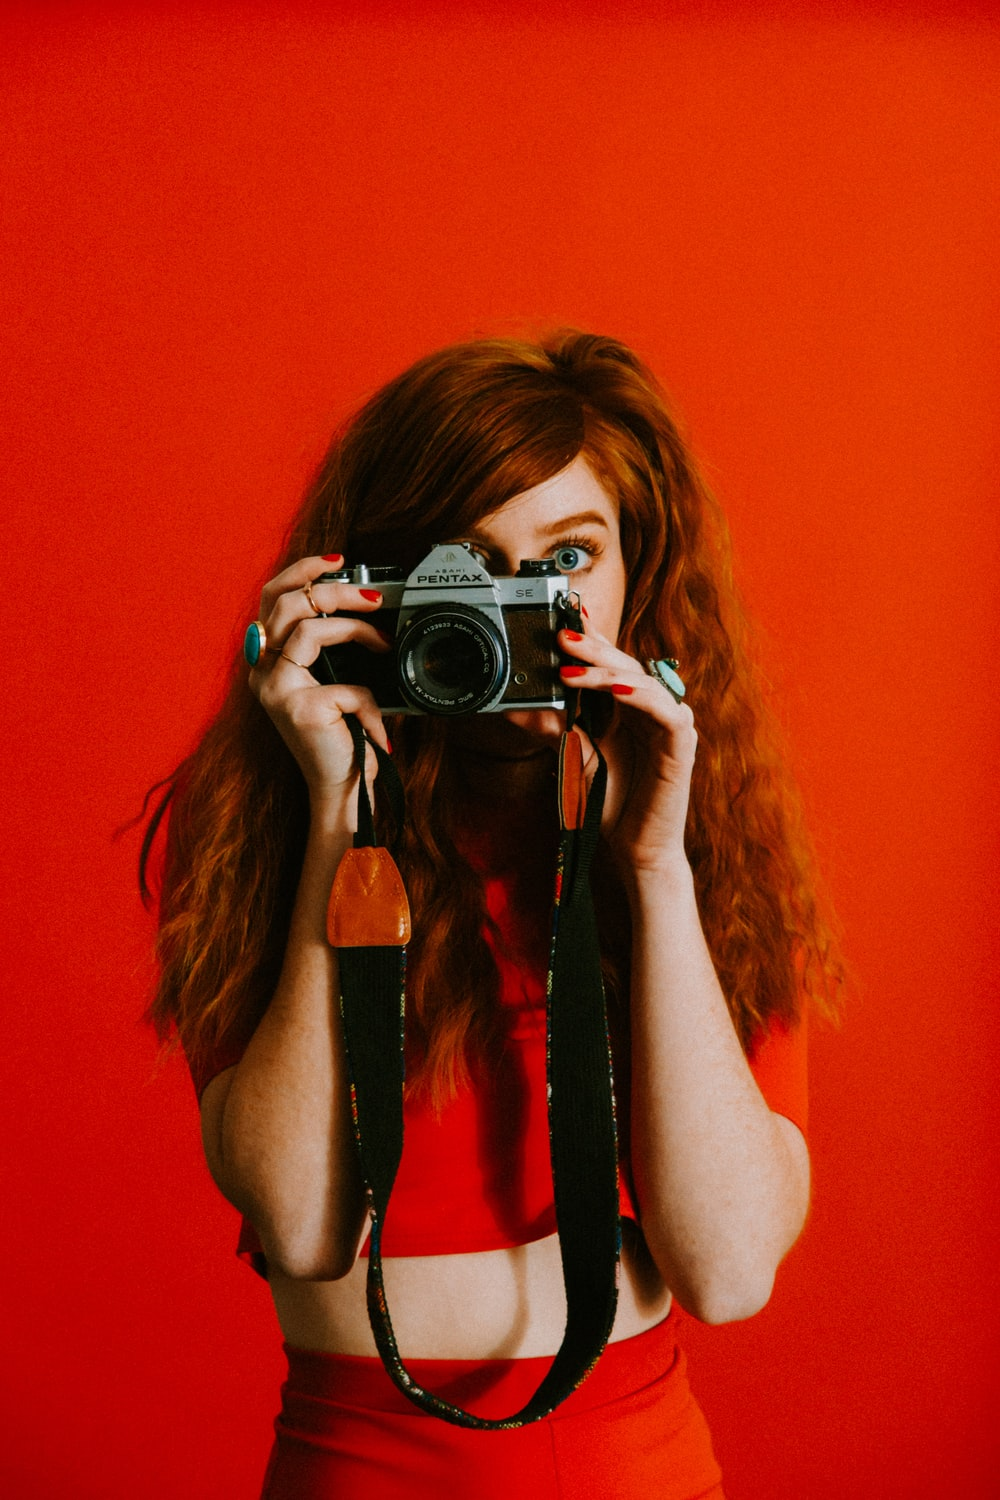 woman in red top and bottoms holding Pentax camera